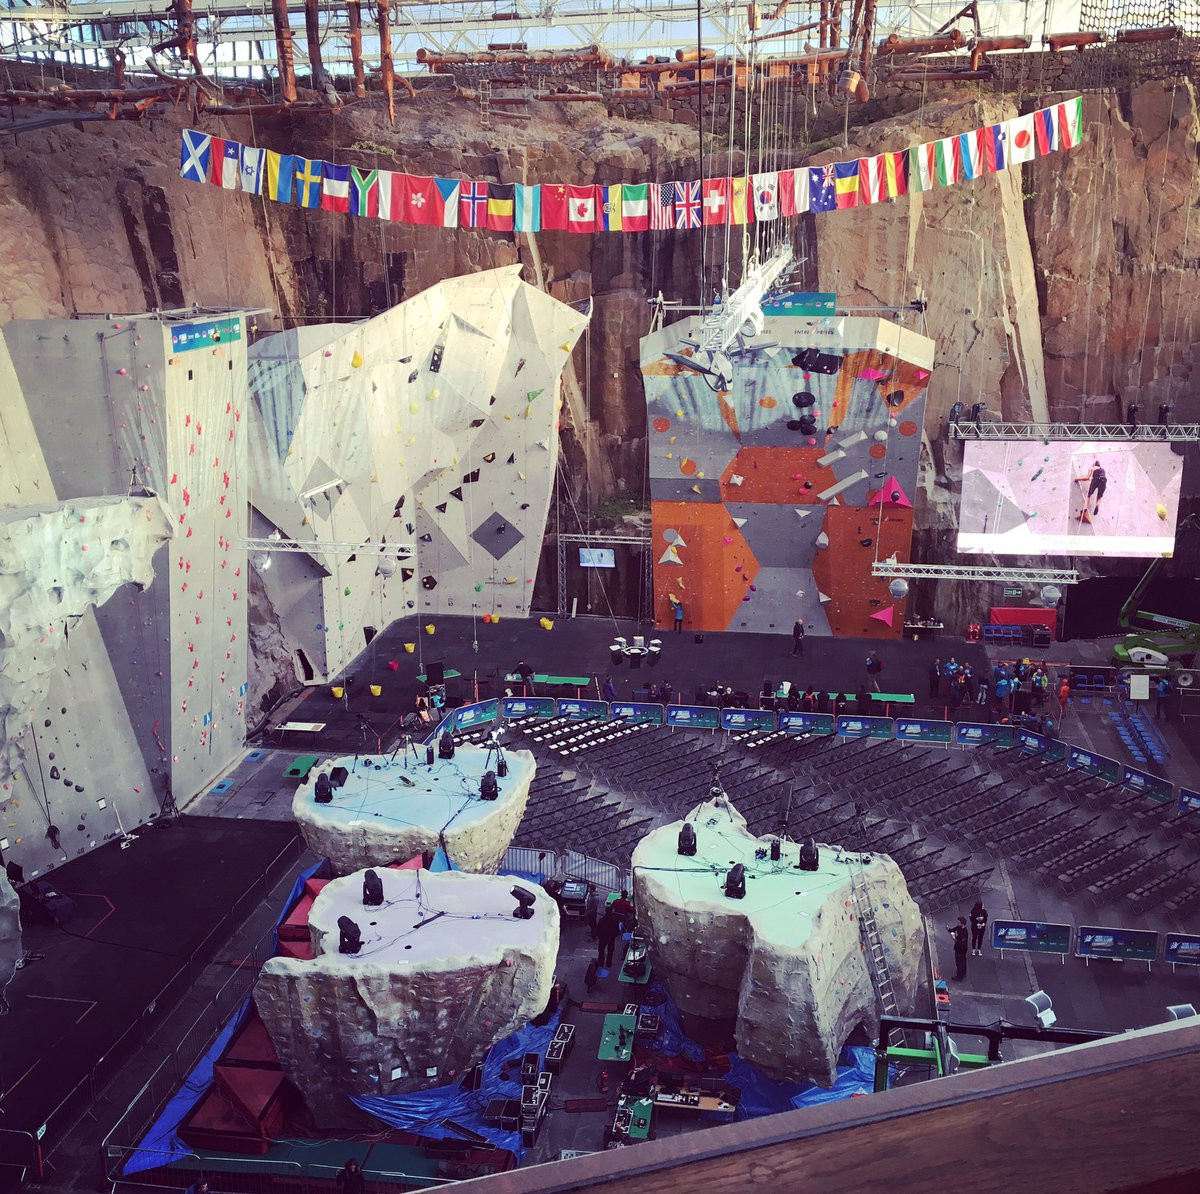 The Edinburgh International Climbing Arena, where this weekend's IFSC Lead and Speed World Cup event is taking place ©Twitter